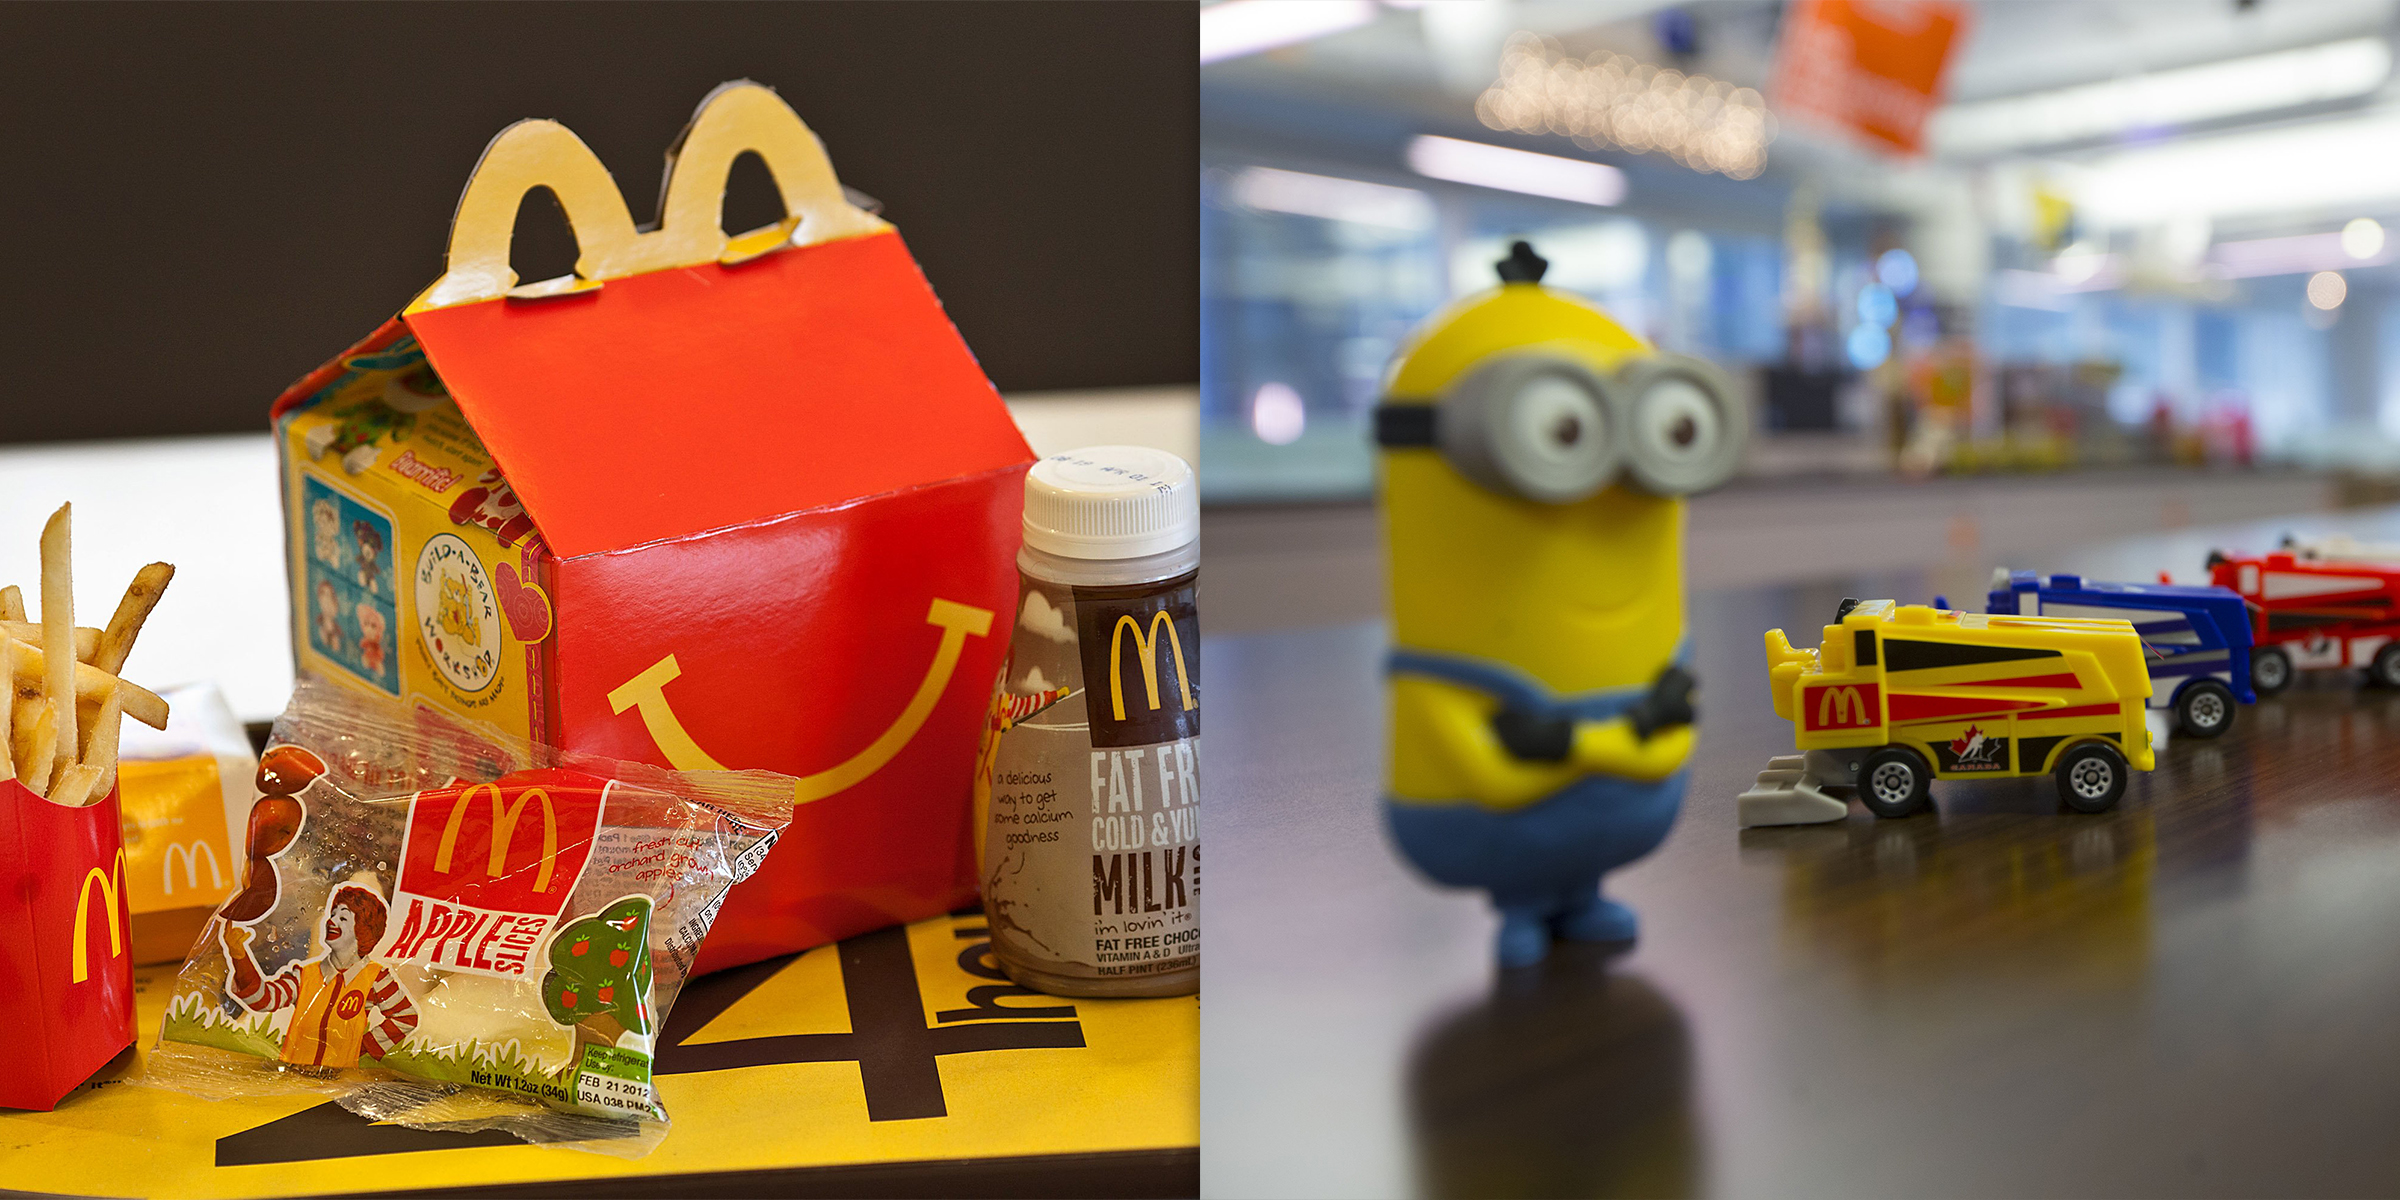 Kids Petition McDonalds to Stop Putting Plastic Toys in Happy Meals, McDonald's Responds